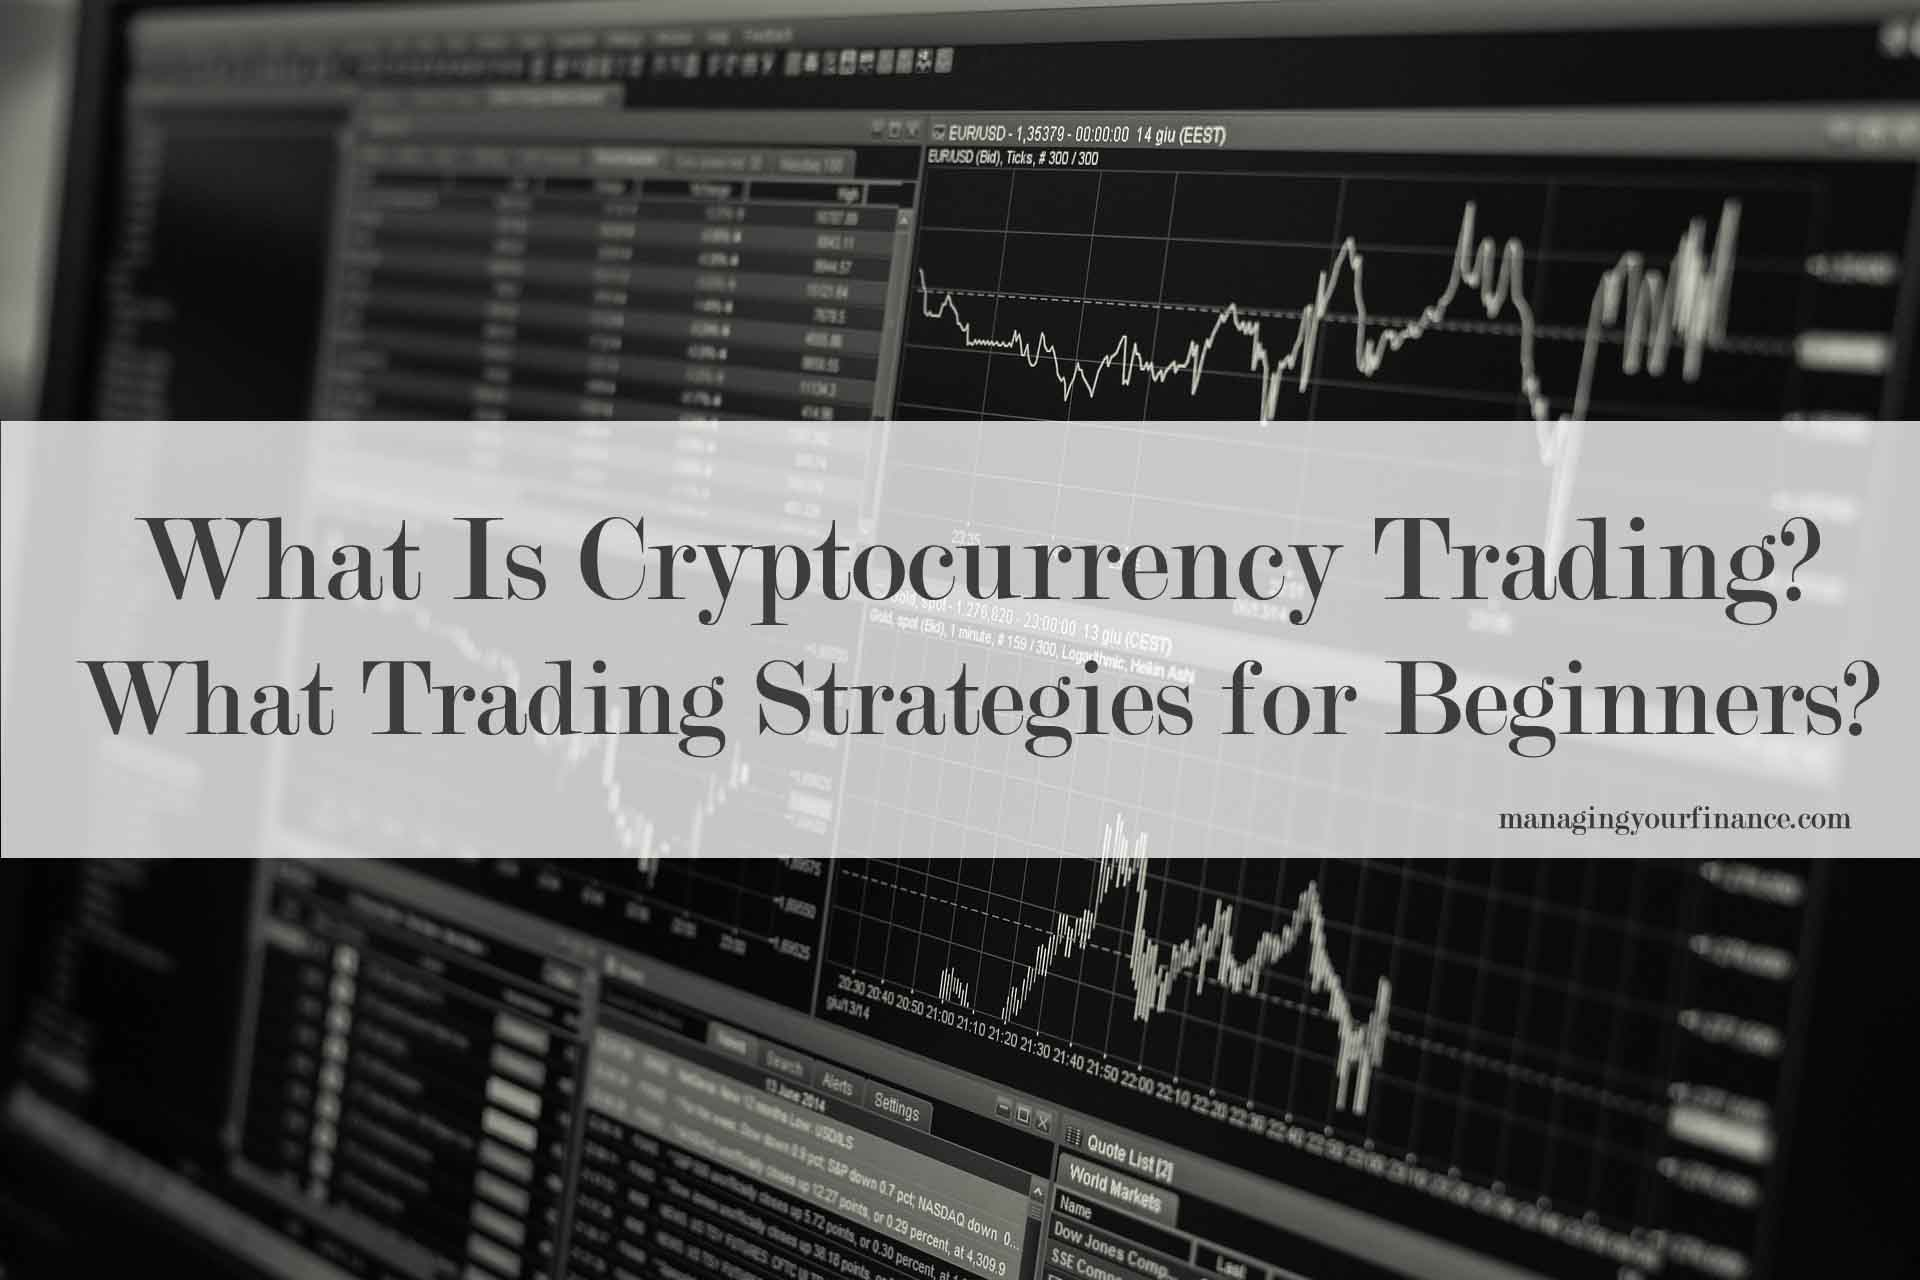 Day trading strategies for beginners